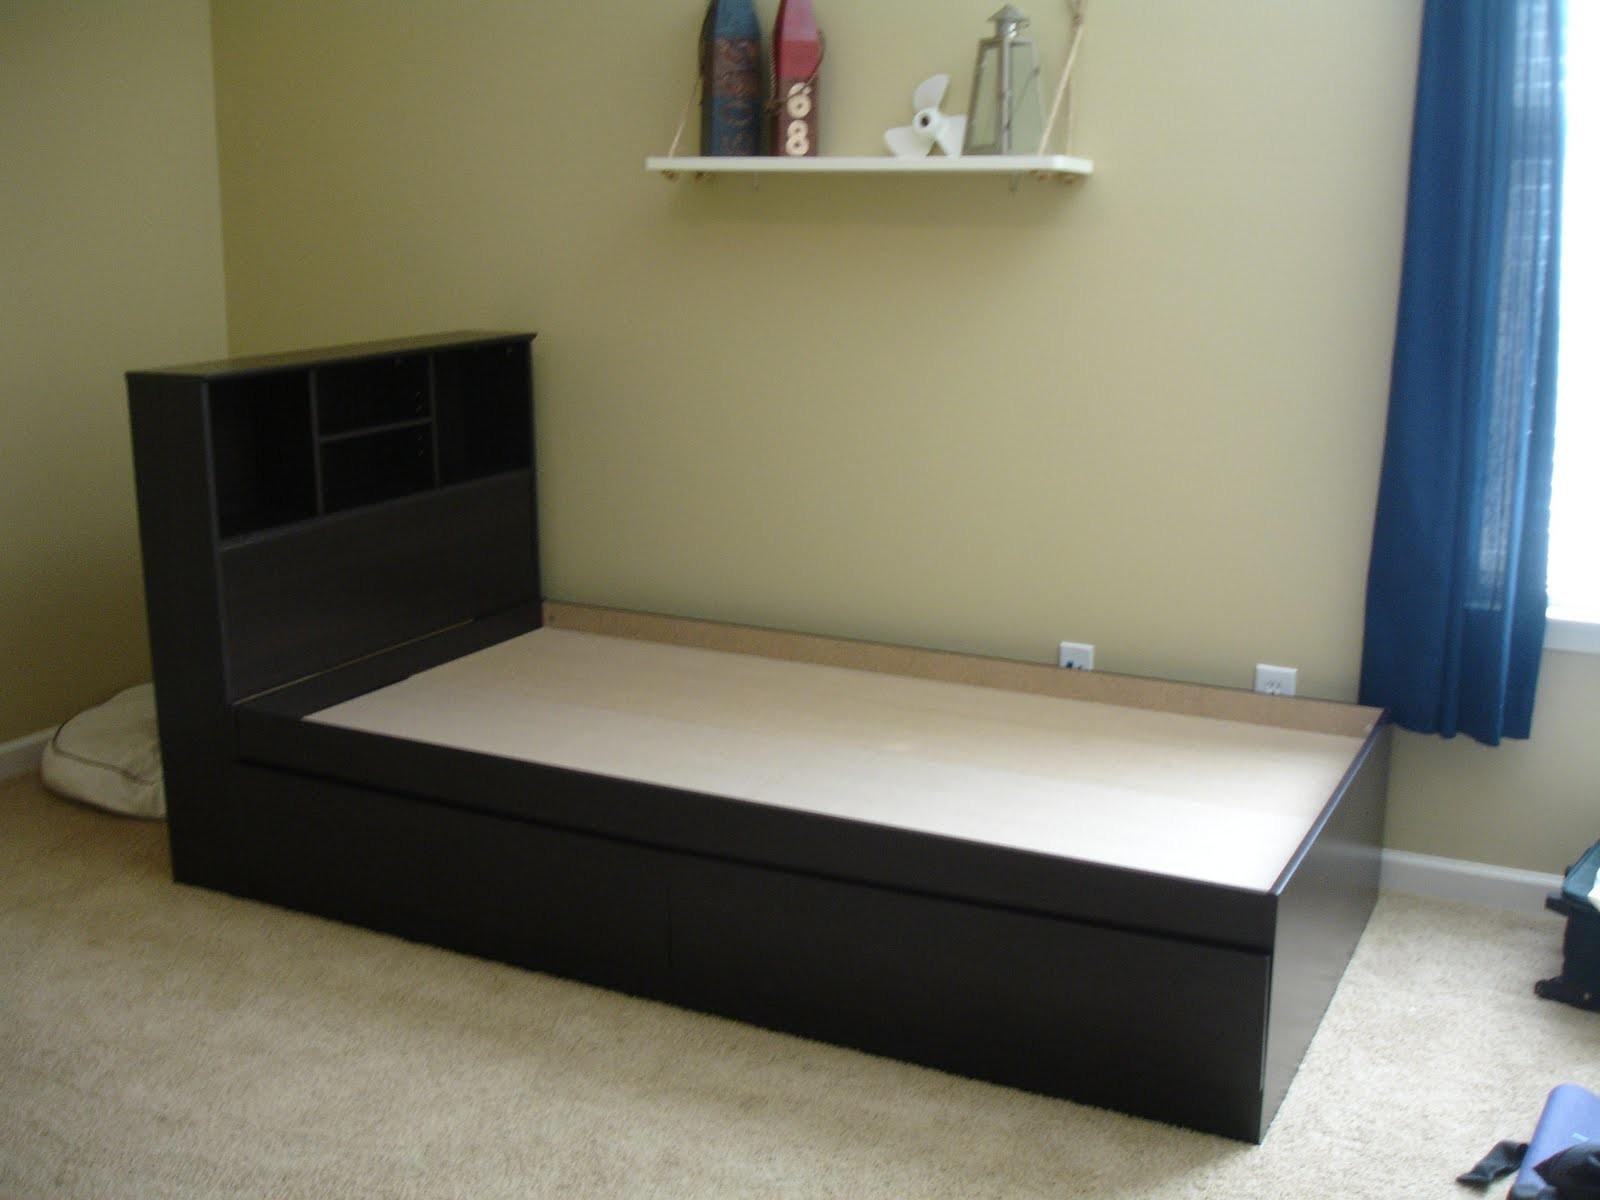 Diy Storage Beds Trendy Bed Pottery Barn Knockoff